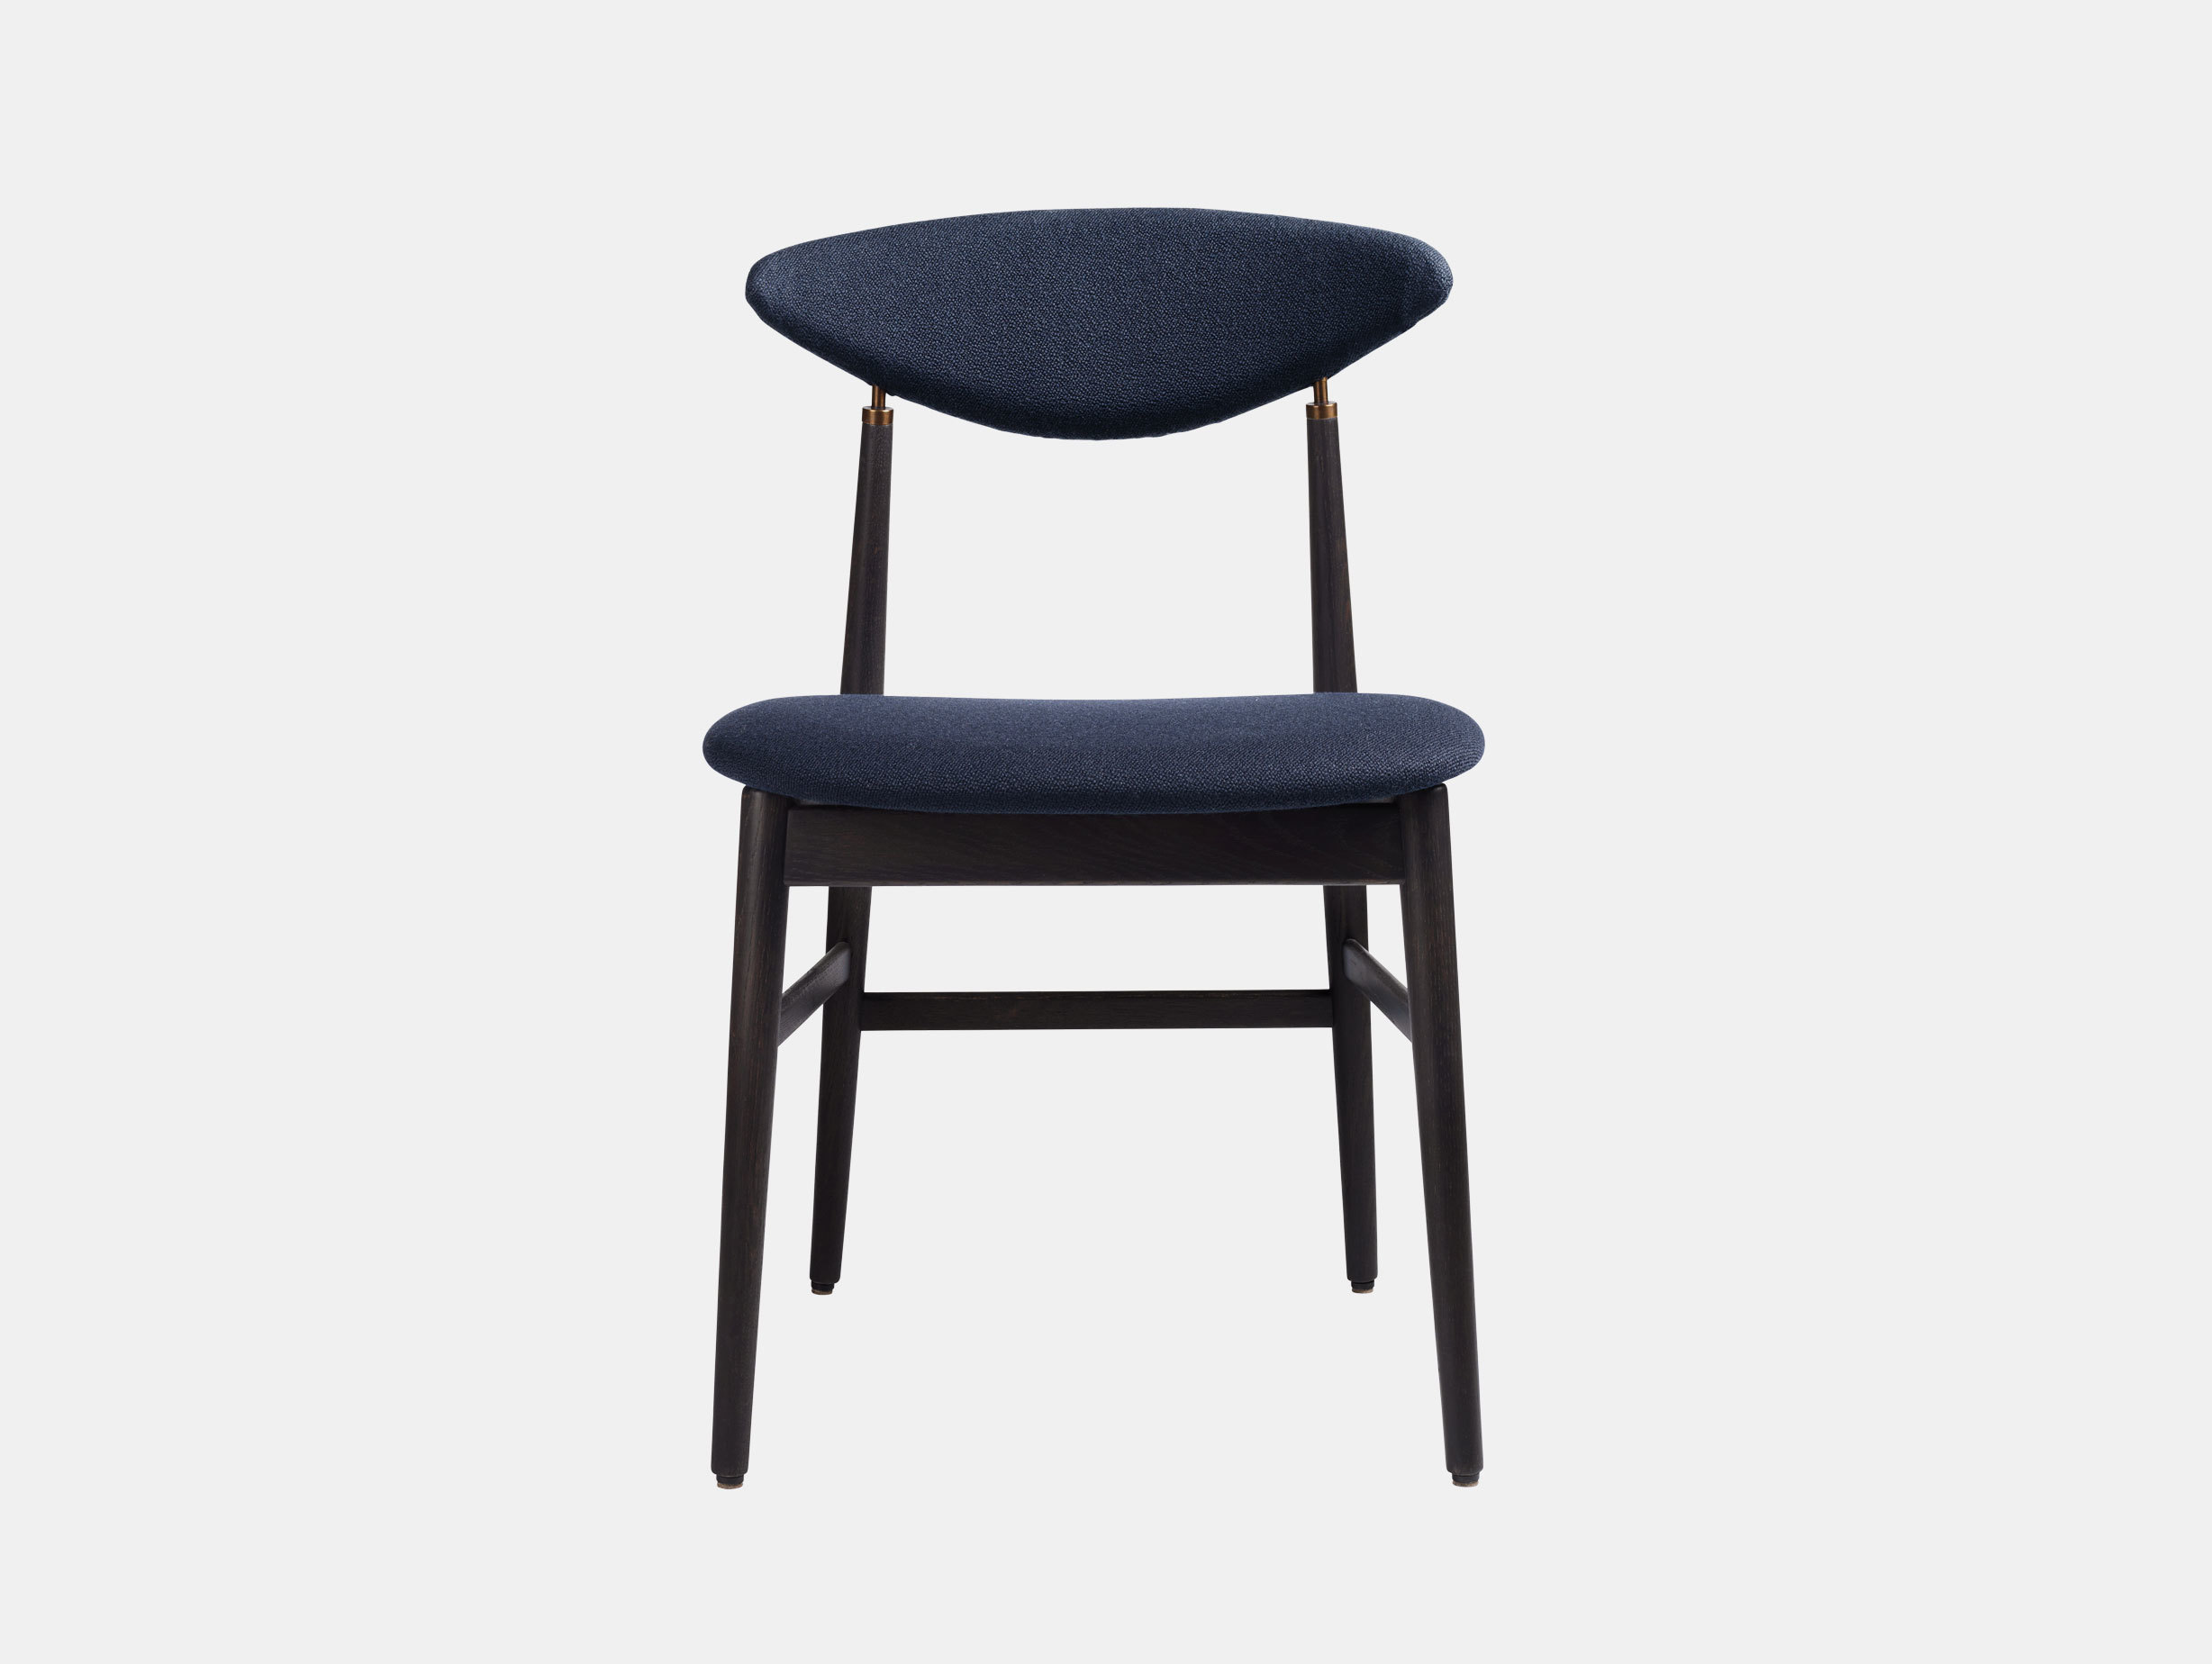 Gubi Gent Dining Chair Black Vidar 554 Gam Fratesi